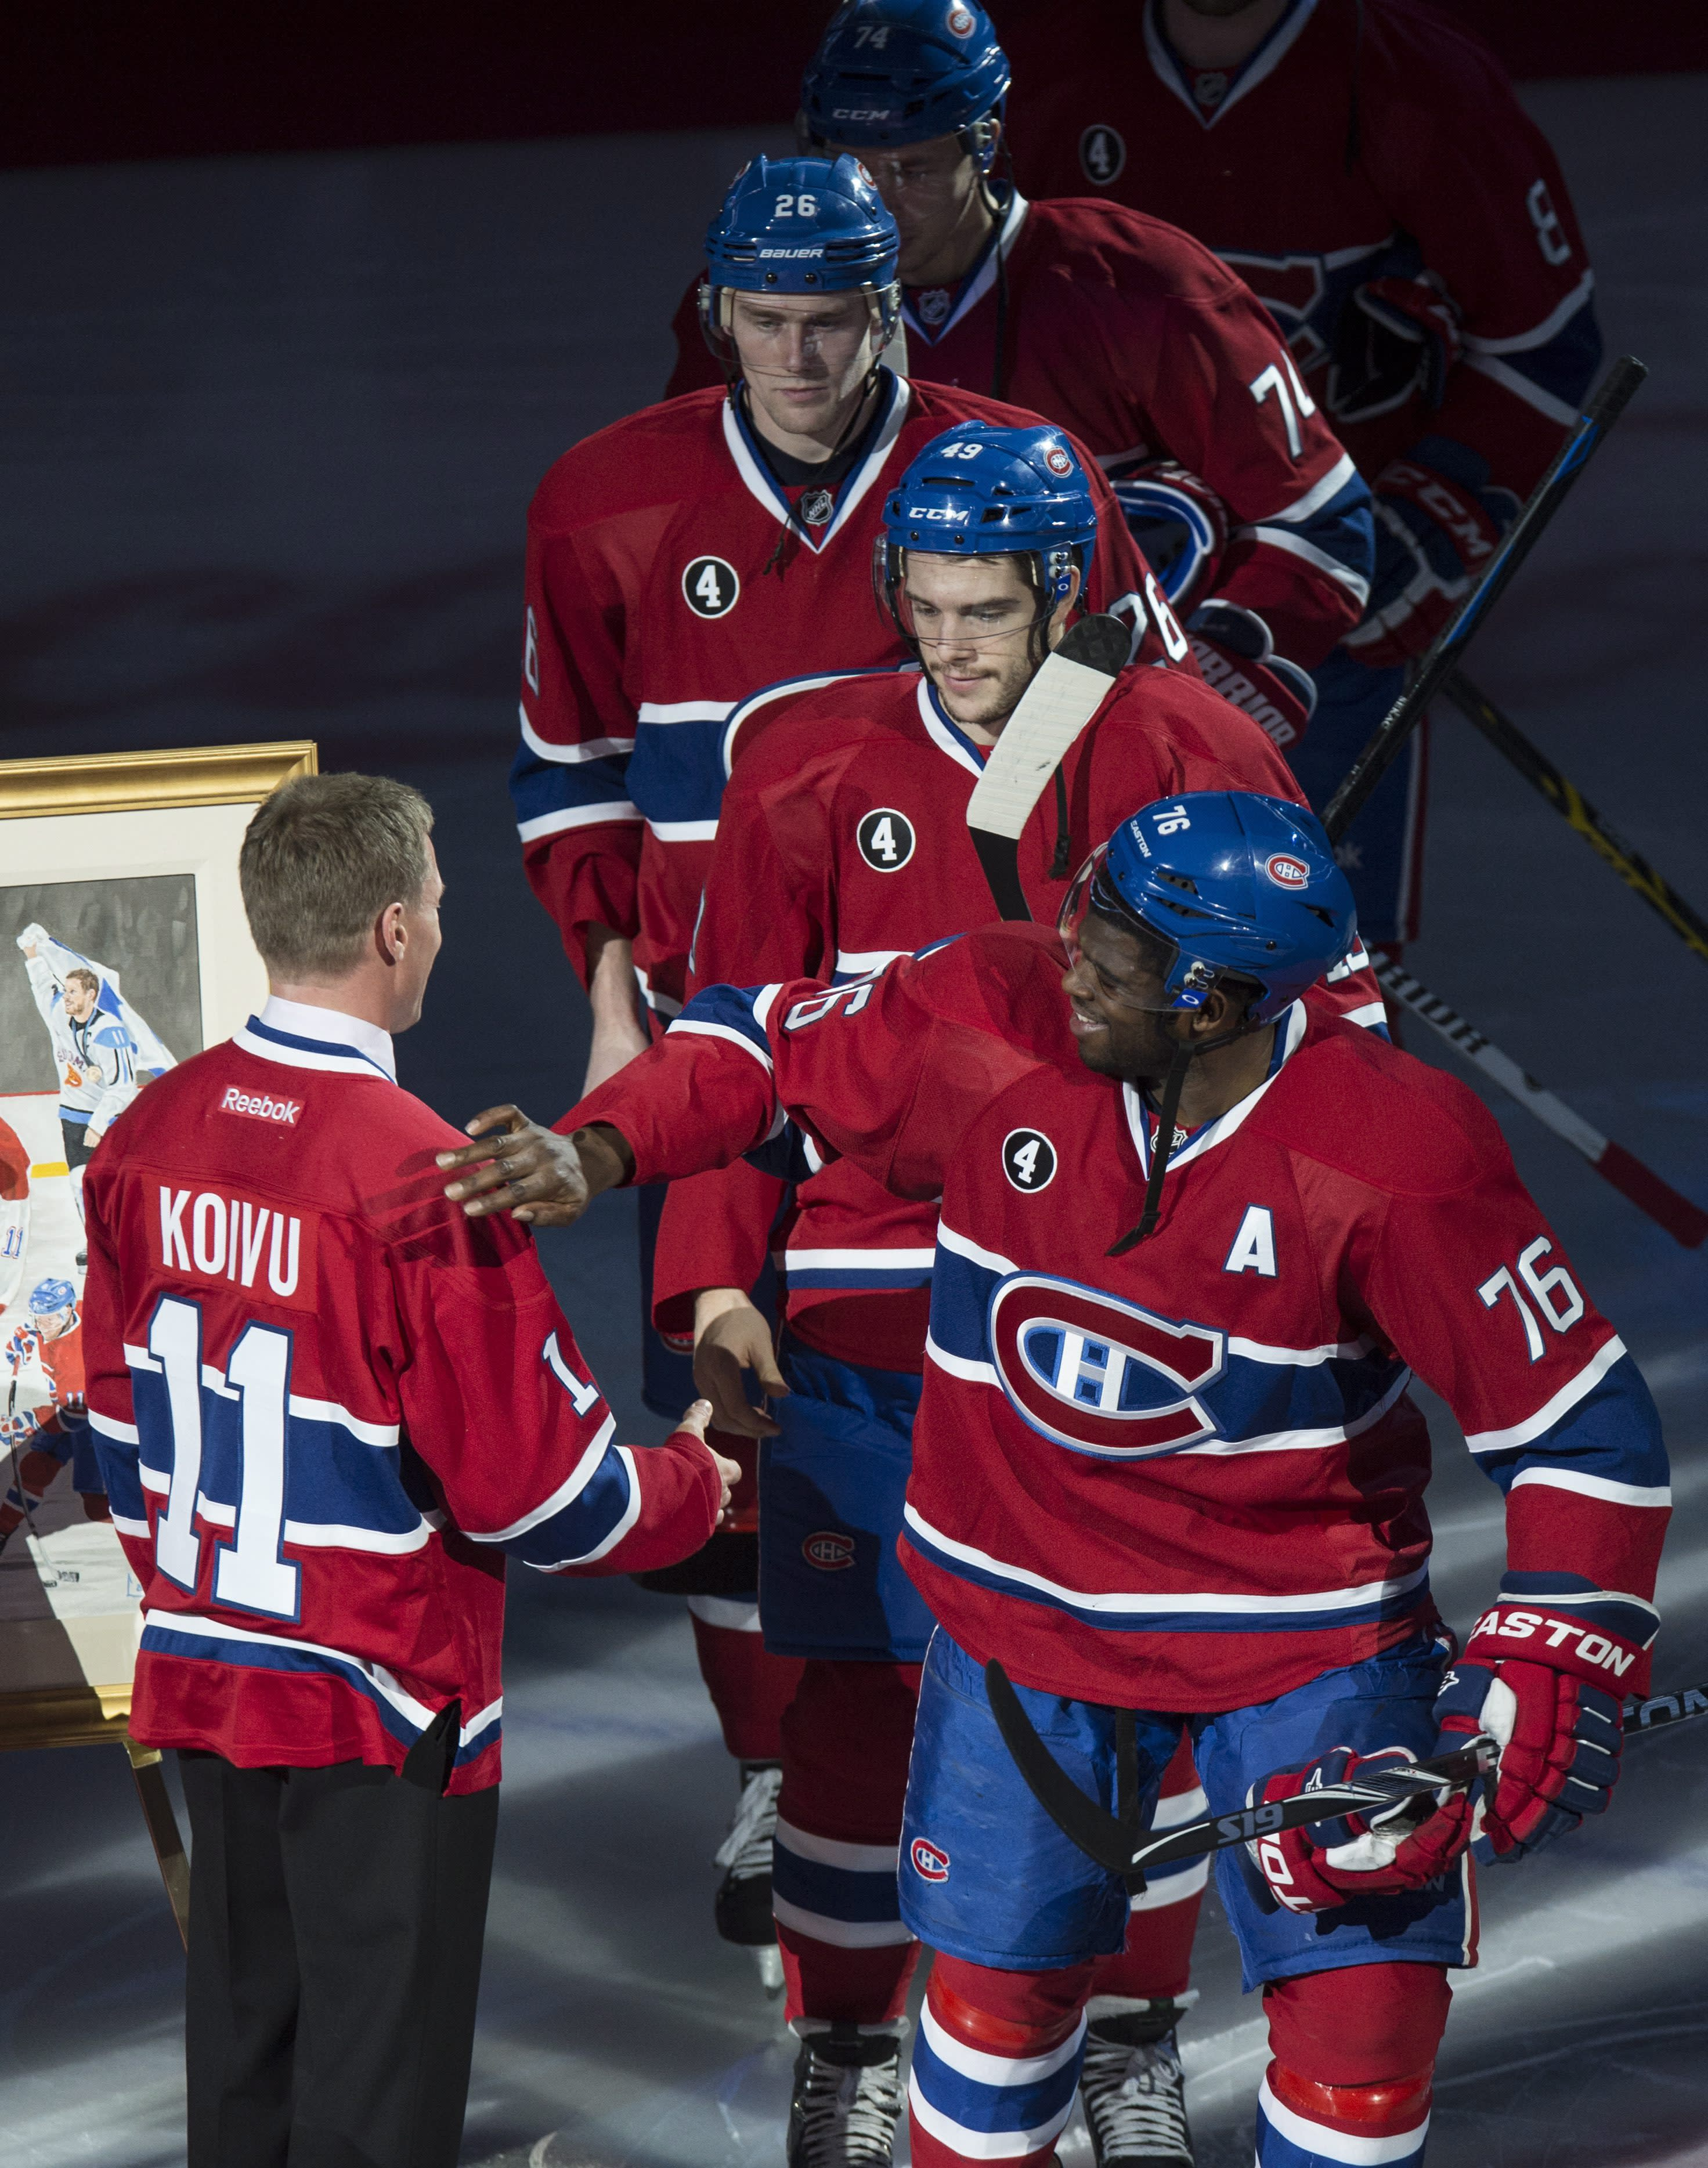 Canadiens honor former captain Koivu